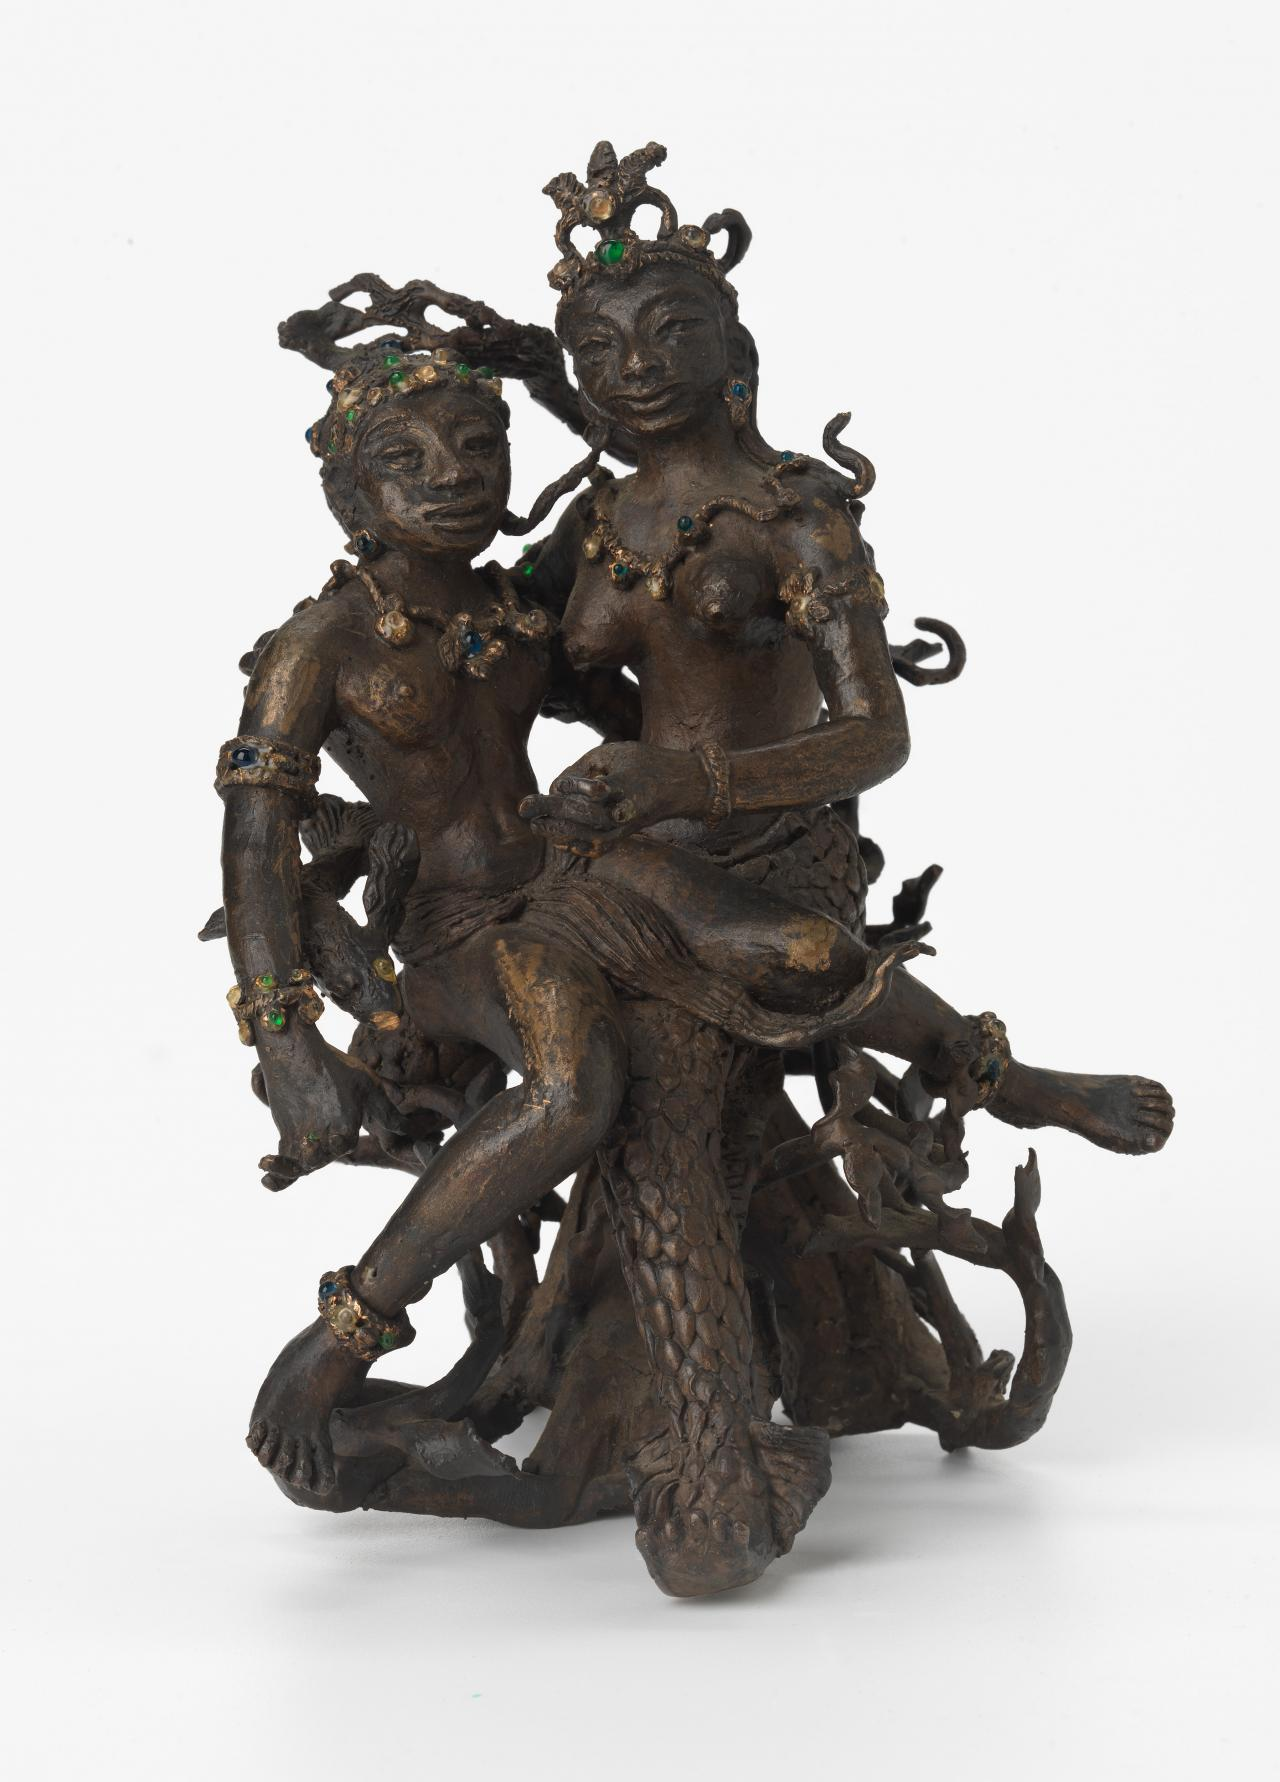 Sea goddess with young king